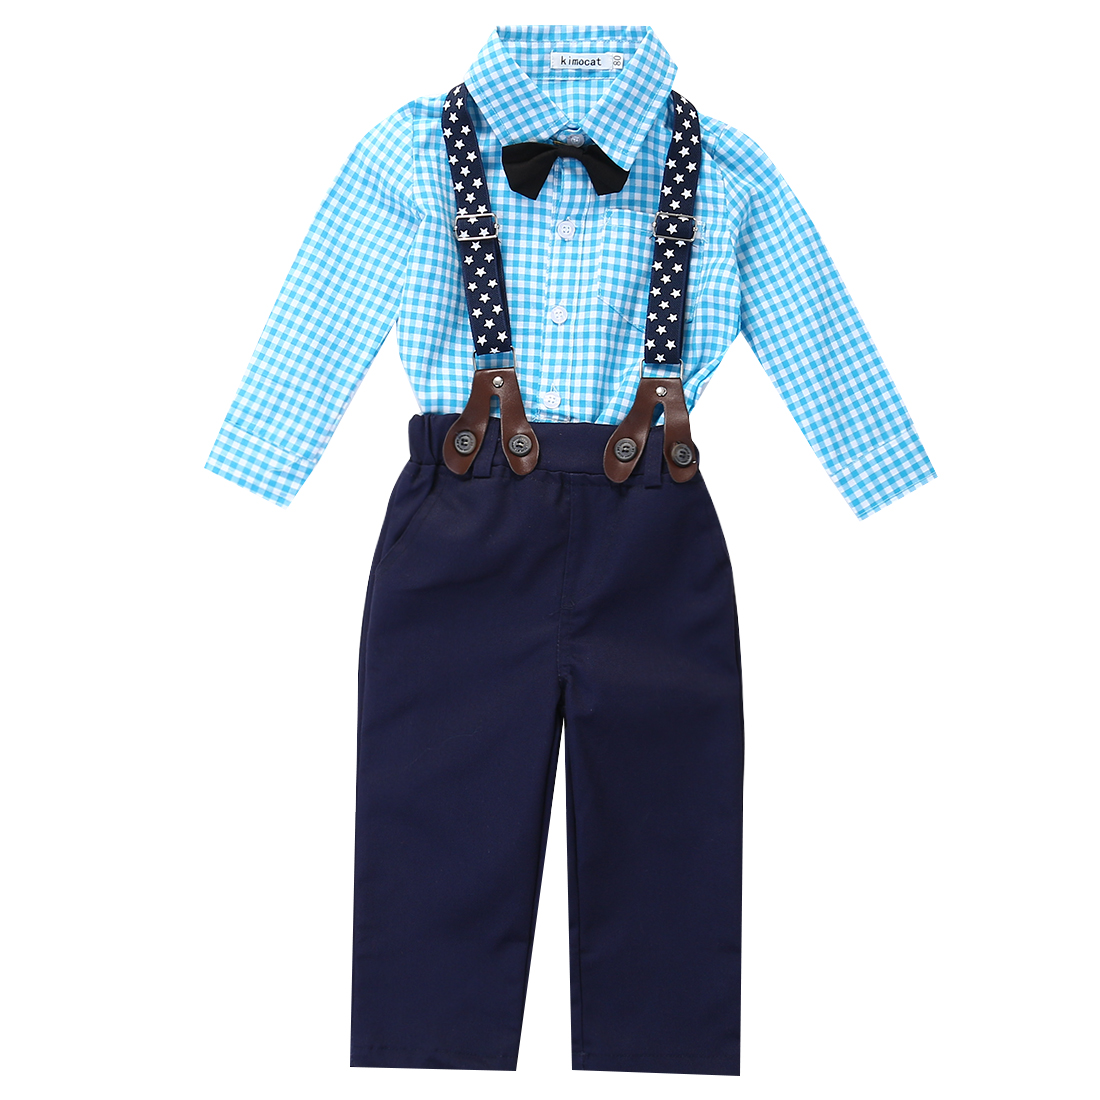 Pudcoco 2pcs Toddler Baby Boy Bow Tie Plaid Shirt+Suspender Pants Trousers Outfits Set 0-24 Monthes Helen115